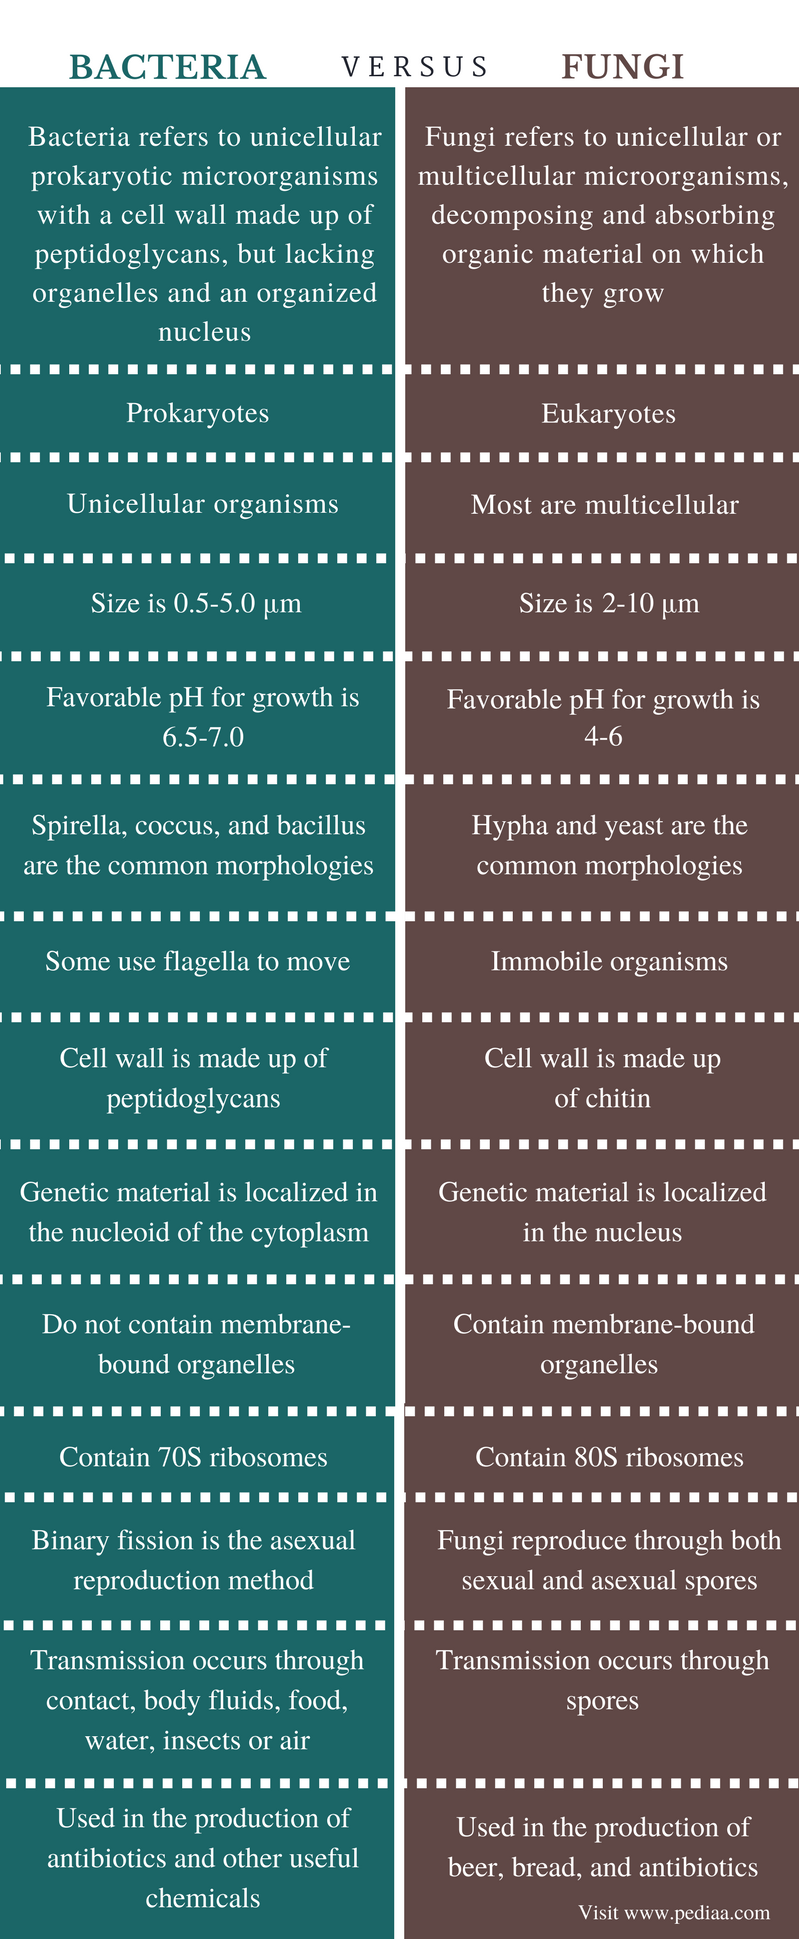 Difference Between Bacteria and Fungi - Comparison Summary